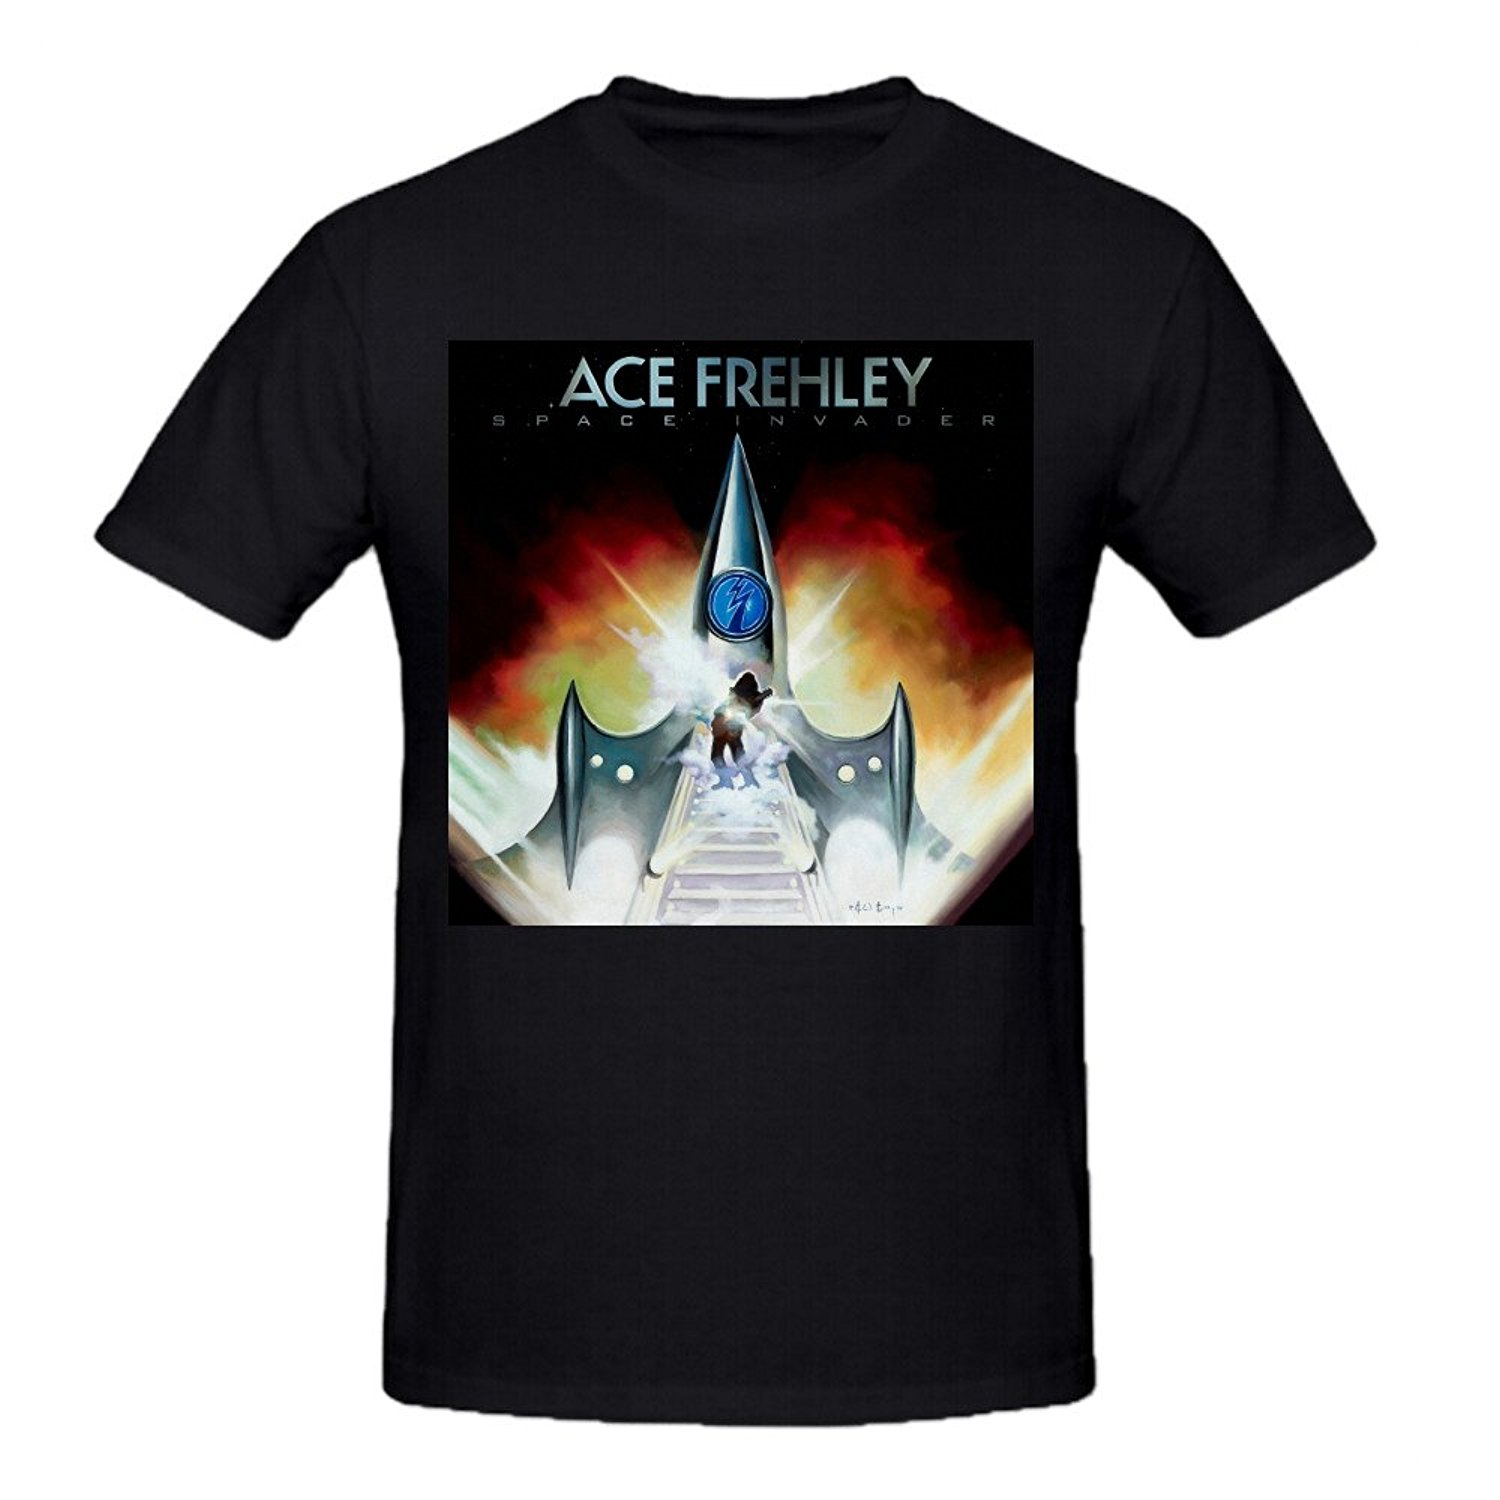 popular free space invaders buy cheap free space invaders lots fashion t shirts ace frehley space invader black tee shirts for men man t